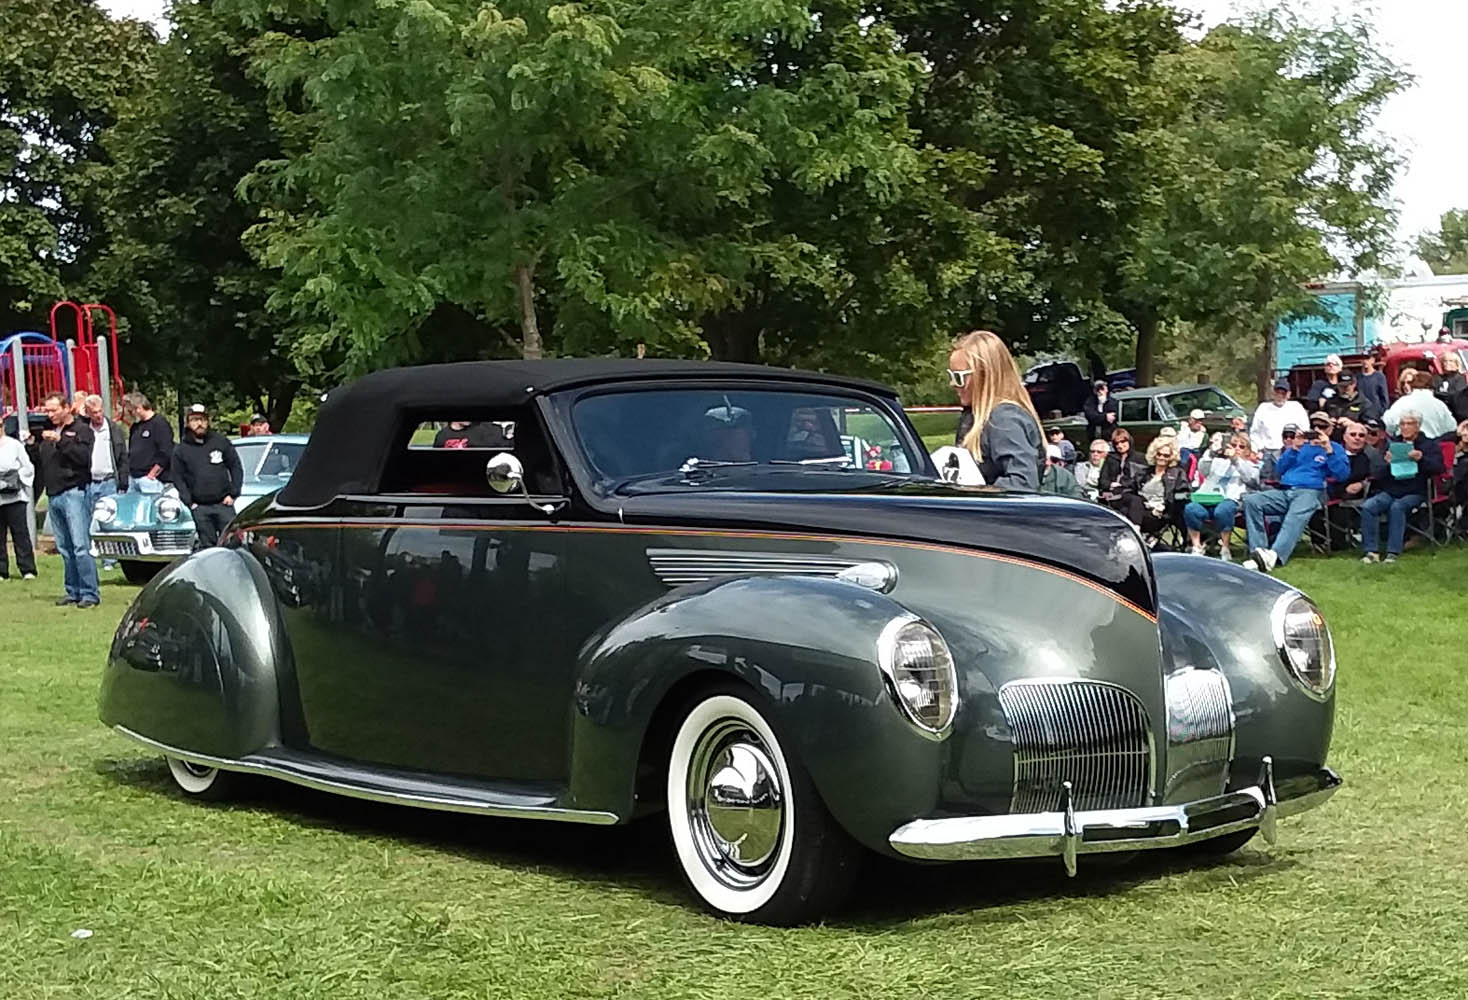 Top 25- 1938 Lincoln Zephyr, Dave Jolly 1